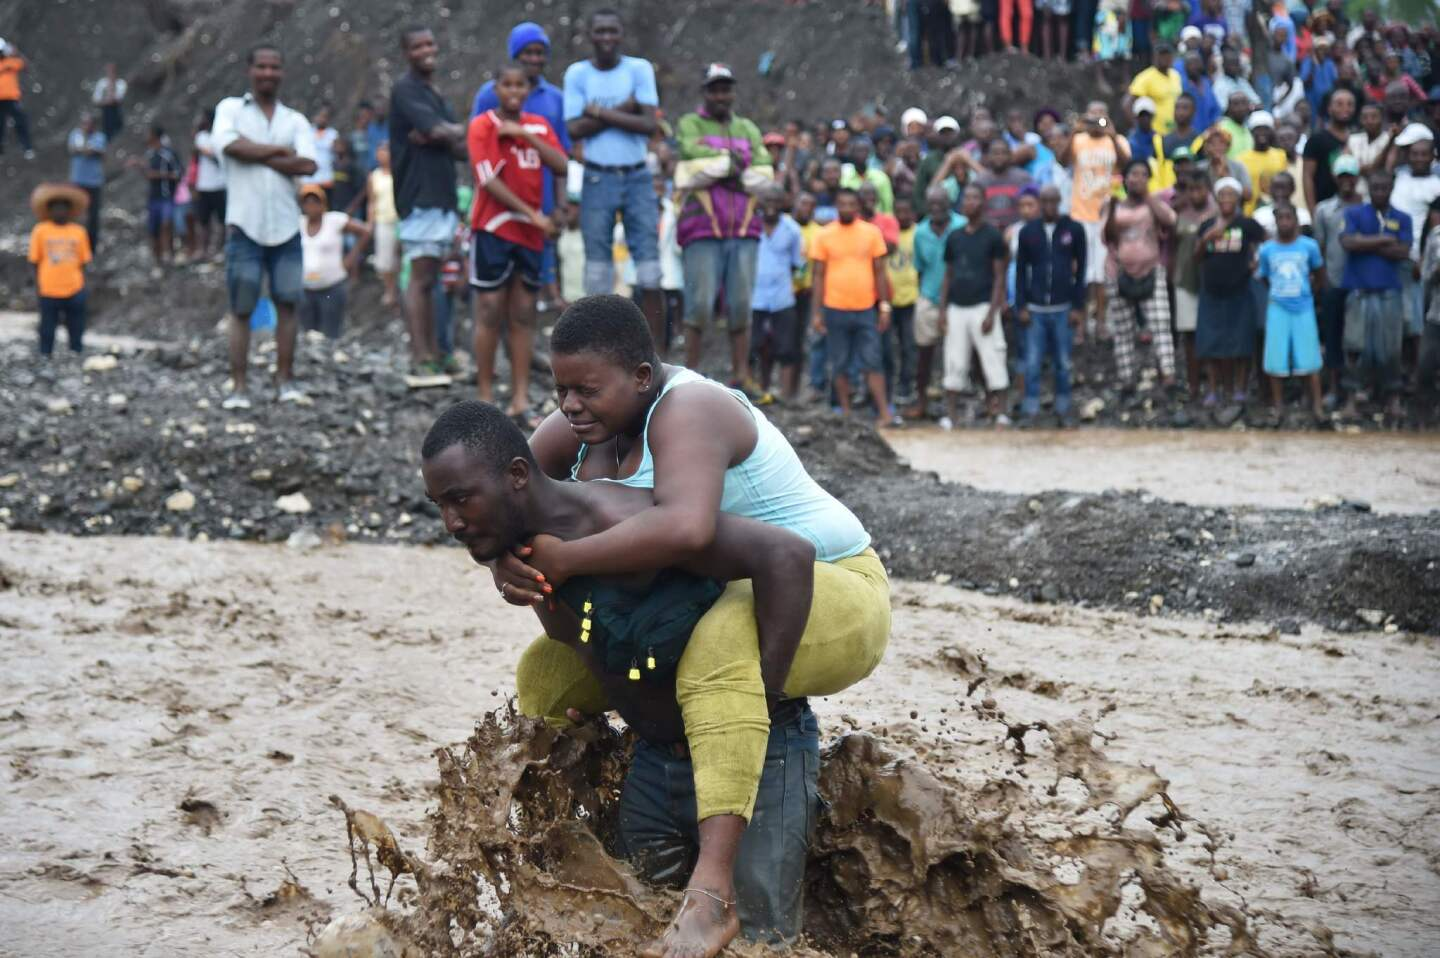 A man carries a woman across a river at Petit Goave where a bridge collapsed during the rain from Hurricane Matthew, southwest of Port-au-Prince, Haiti.